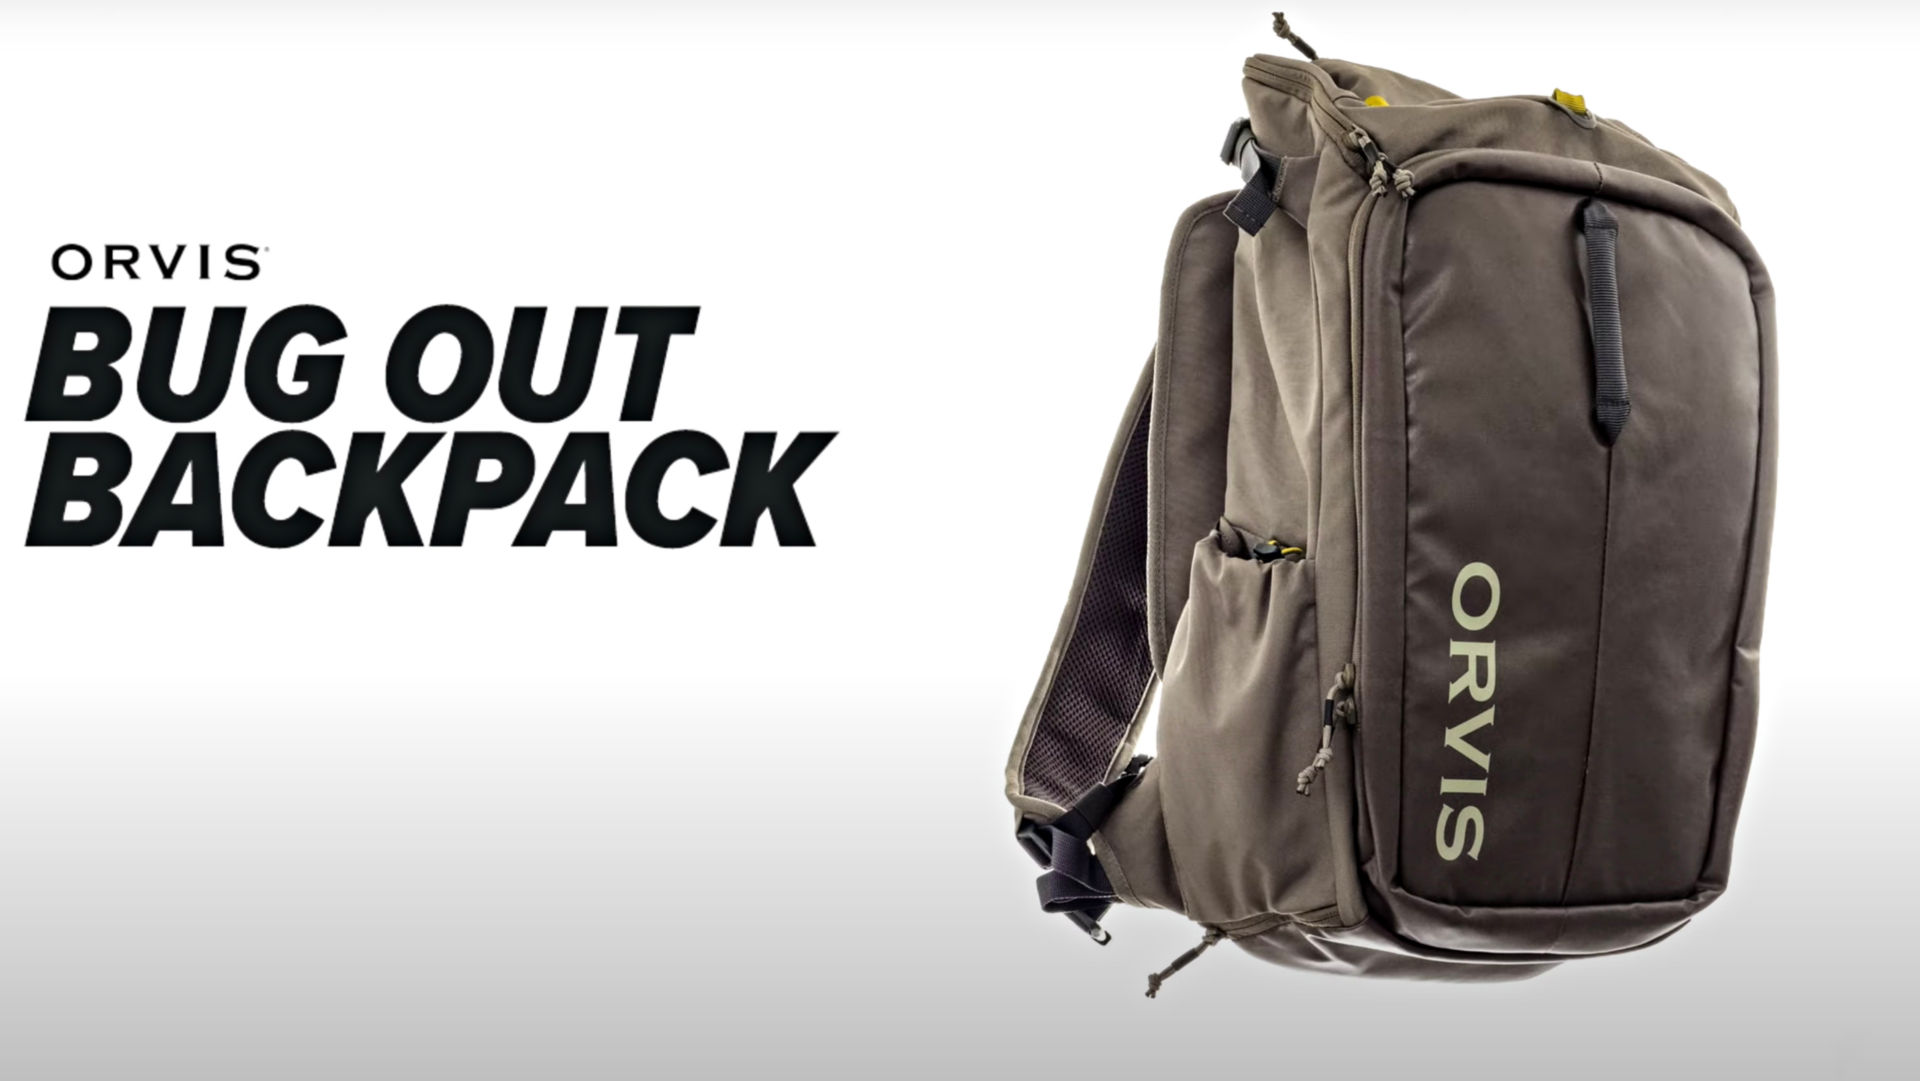 ORVIS Bugout Bag